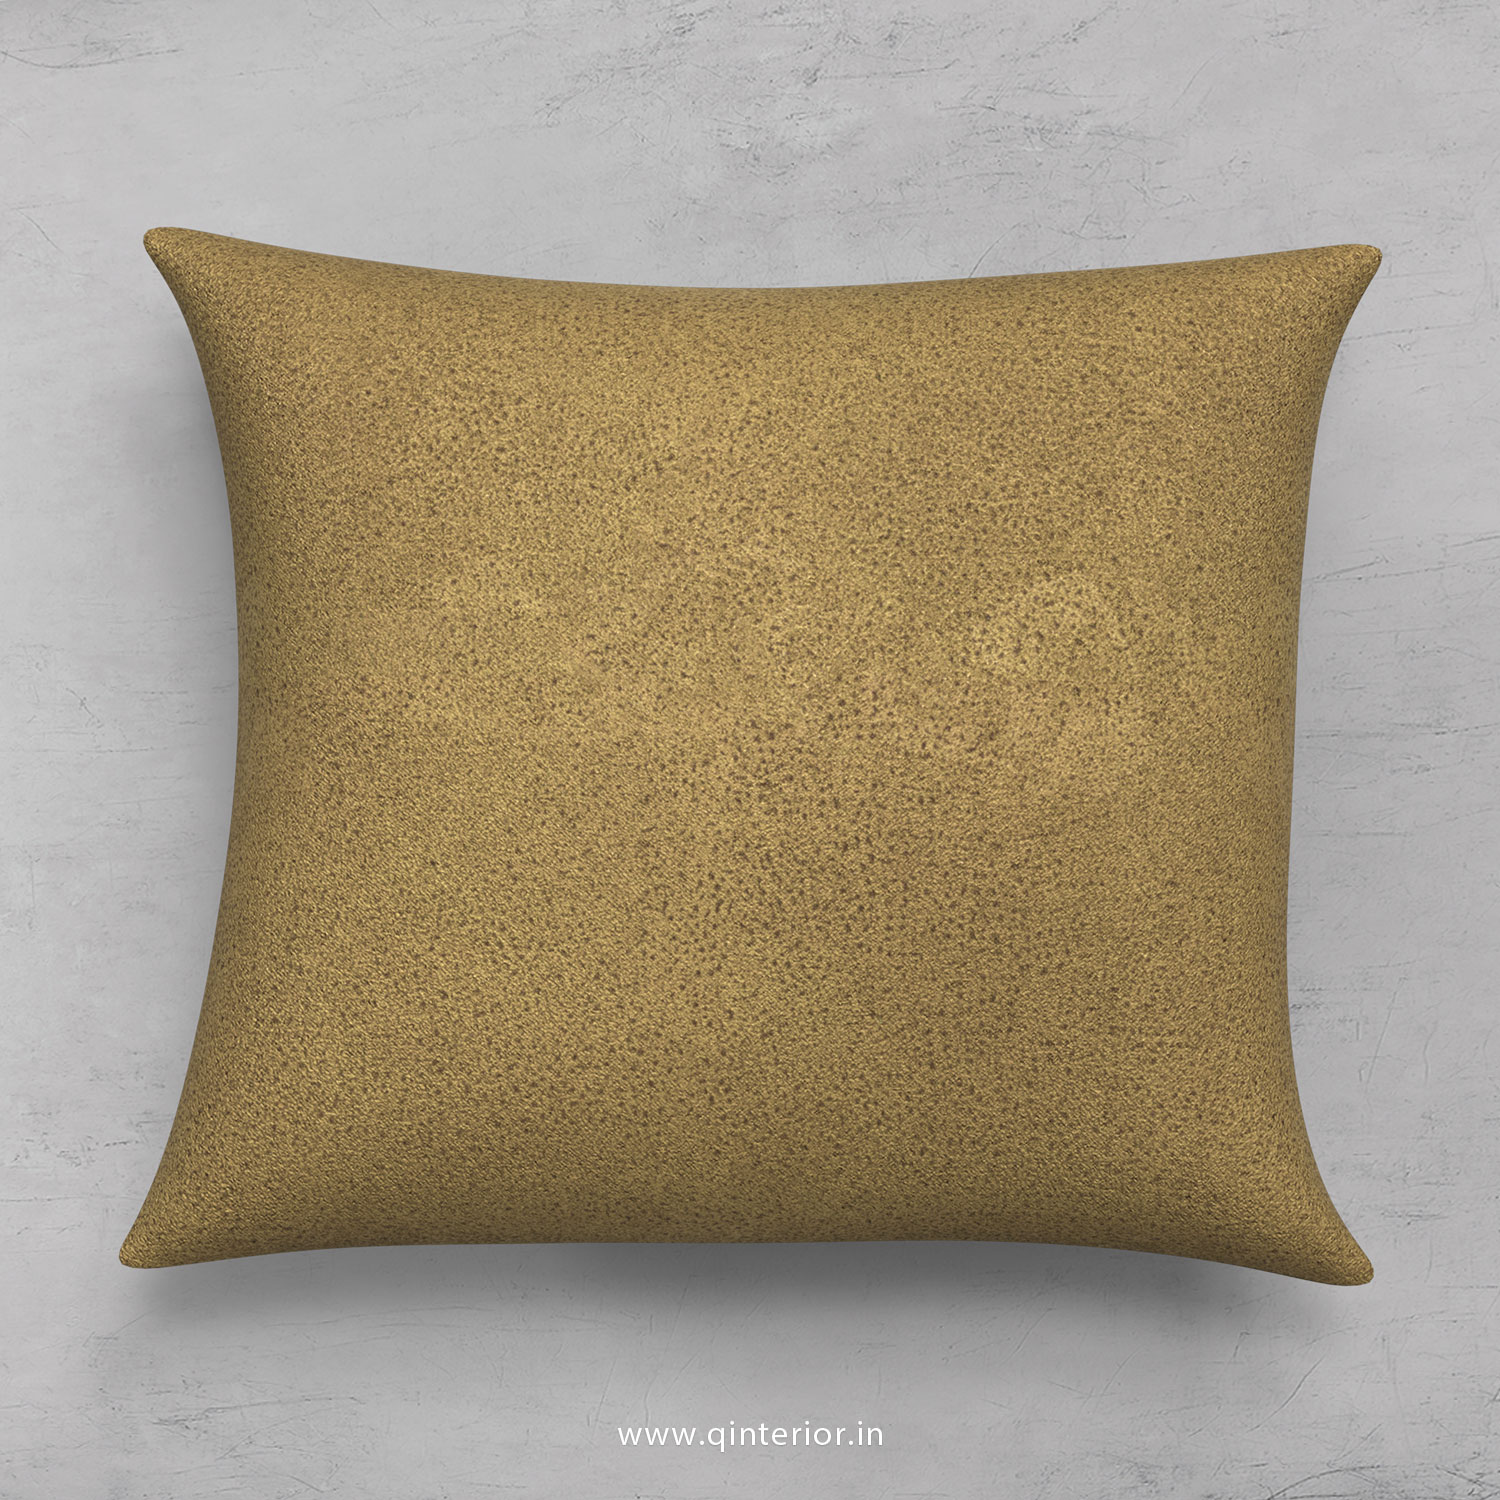 Cushion With Cushion Cover in Fab Leather - CUS001 FL18